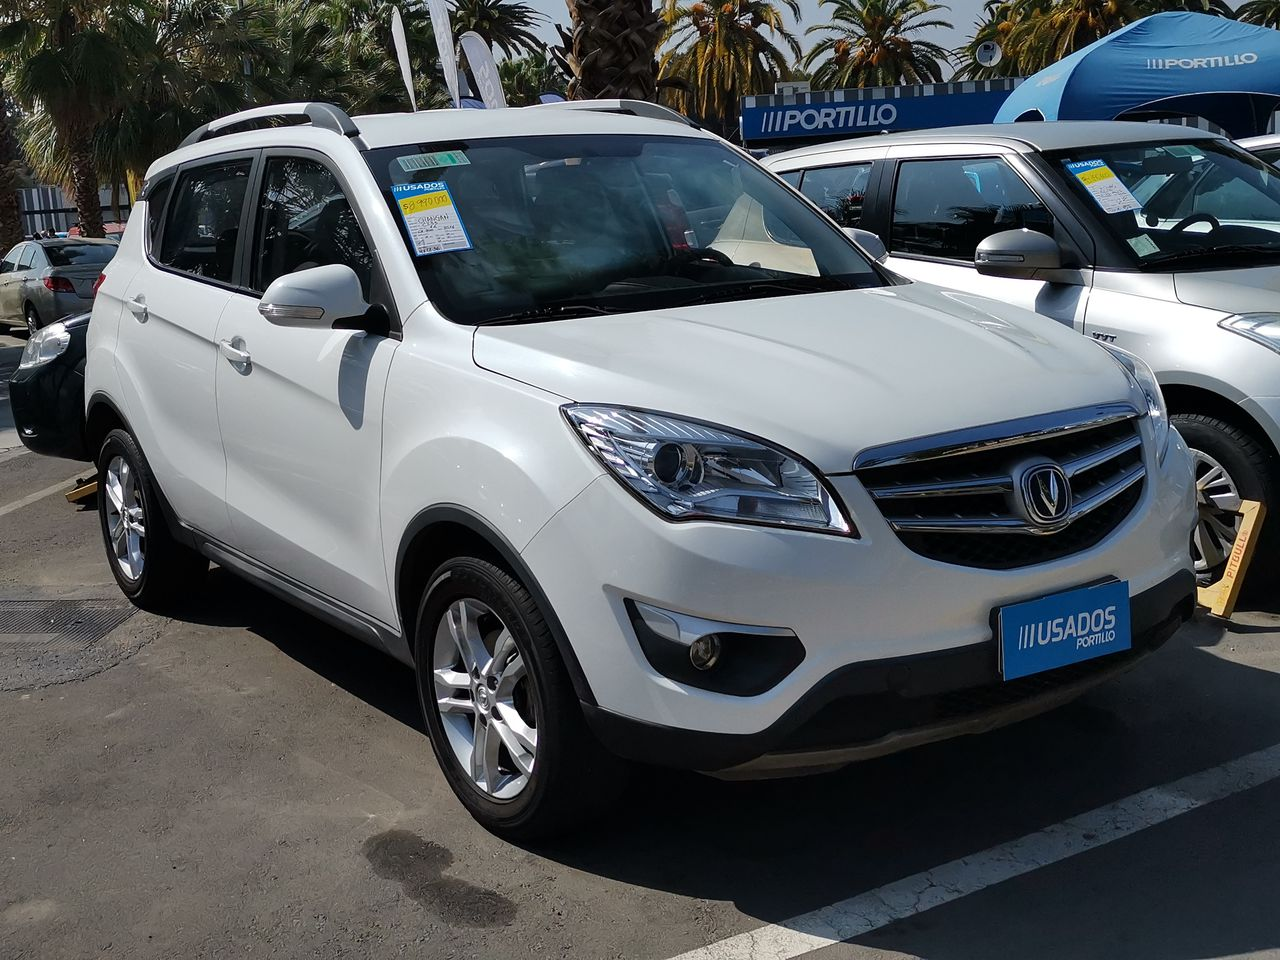 Changan Cs35 1.6 2016  Usado en Automotriz Portillo